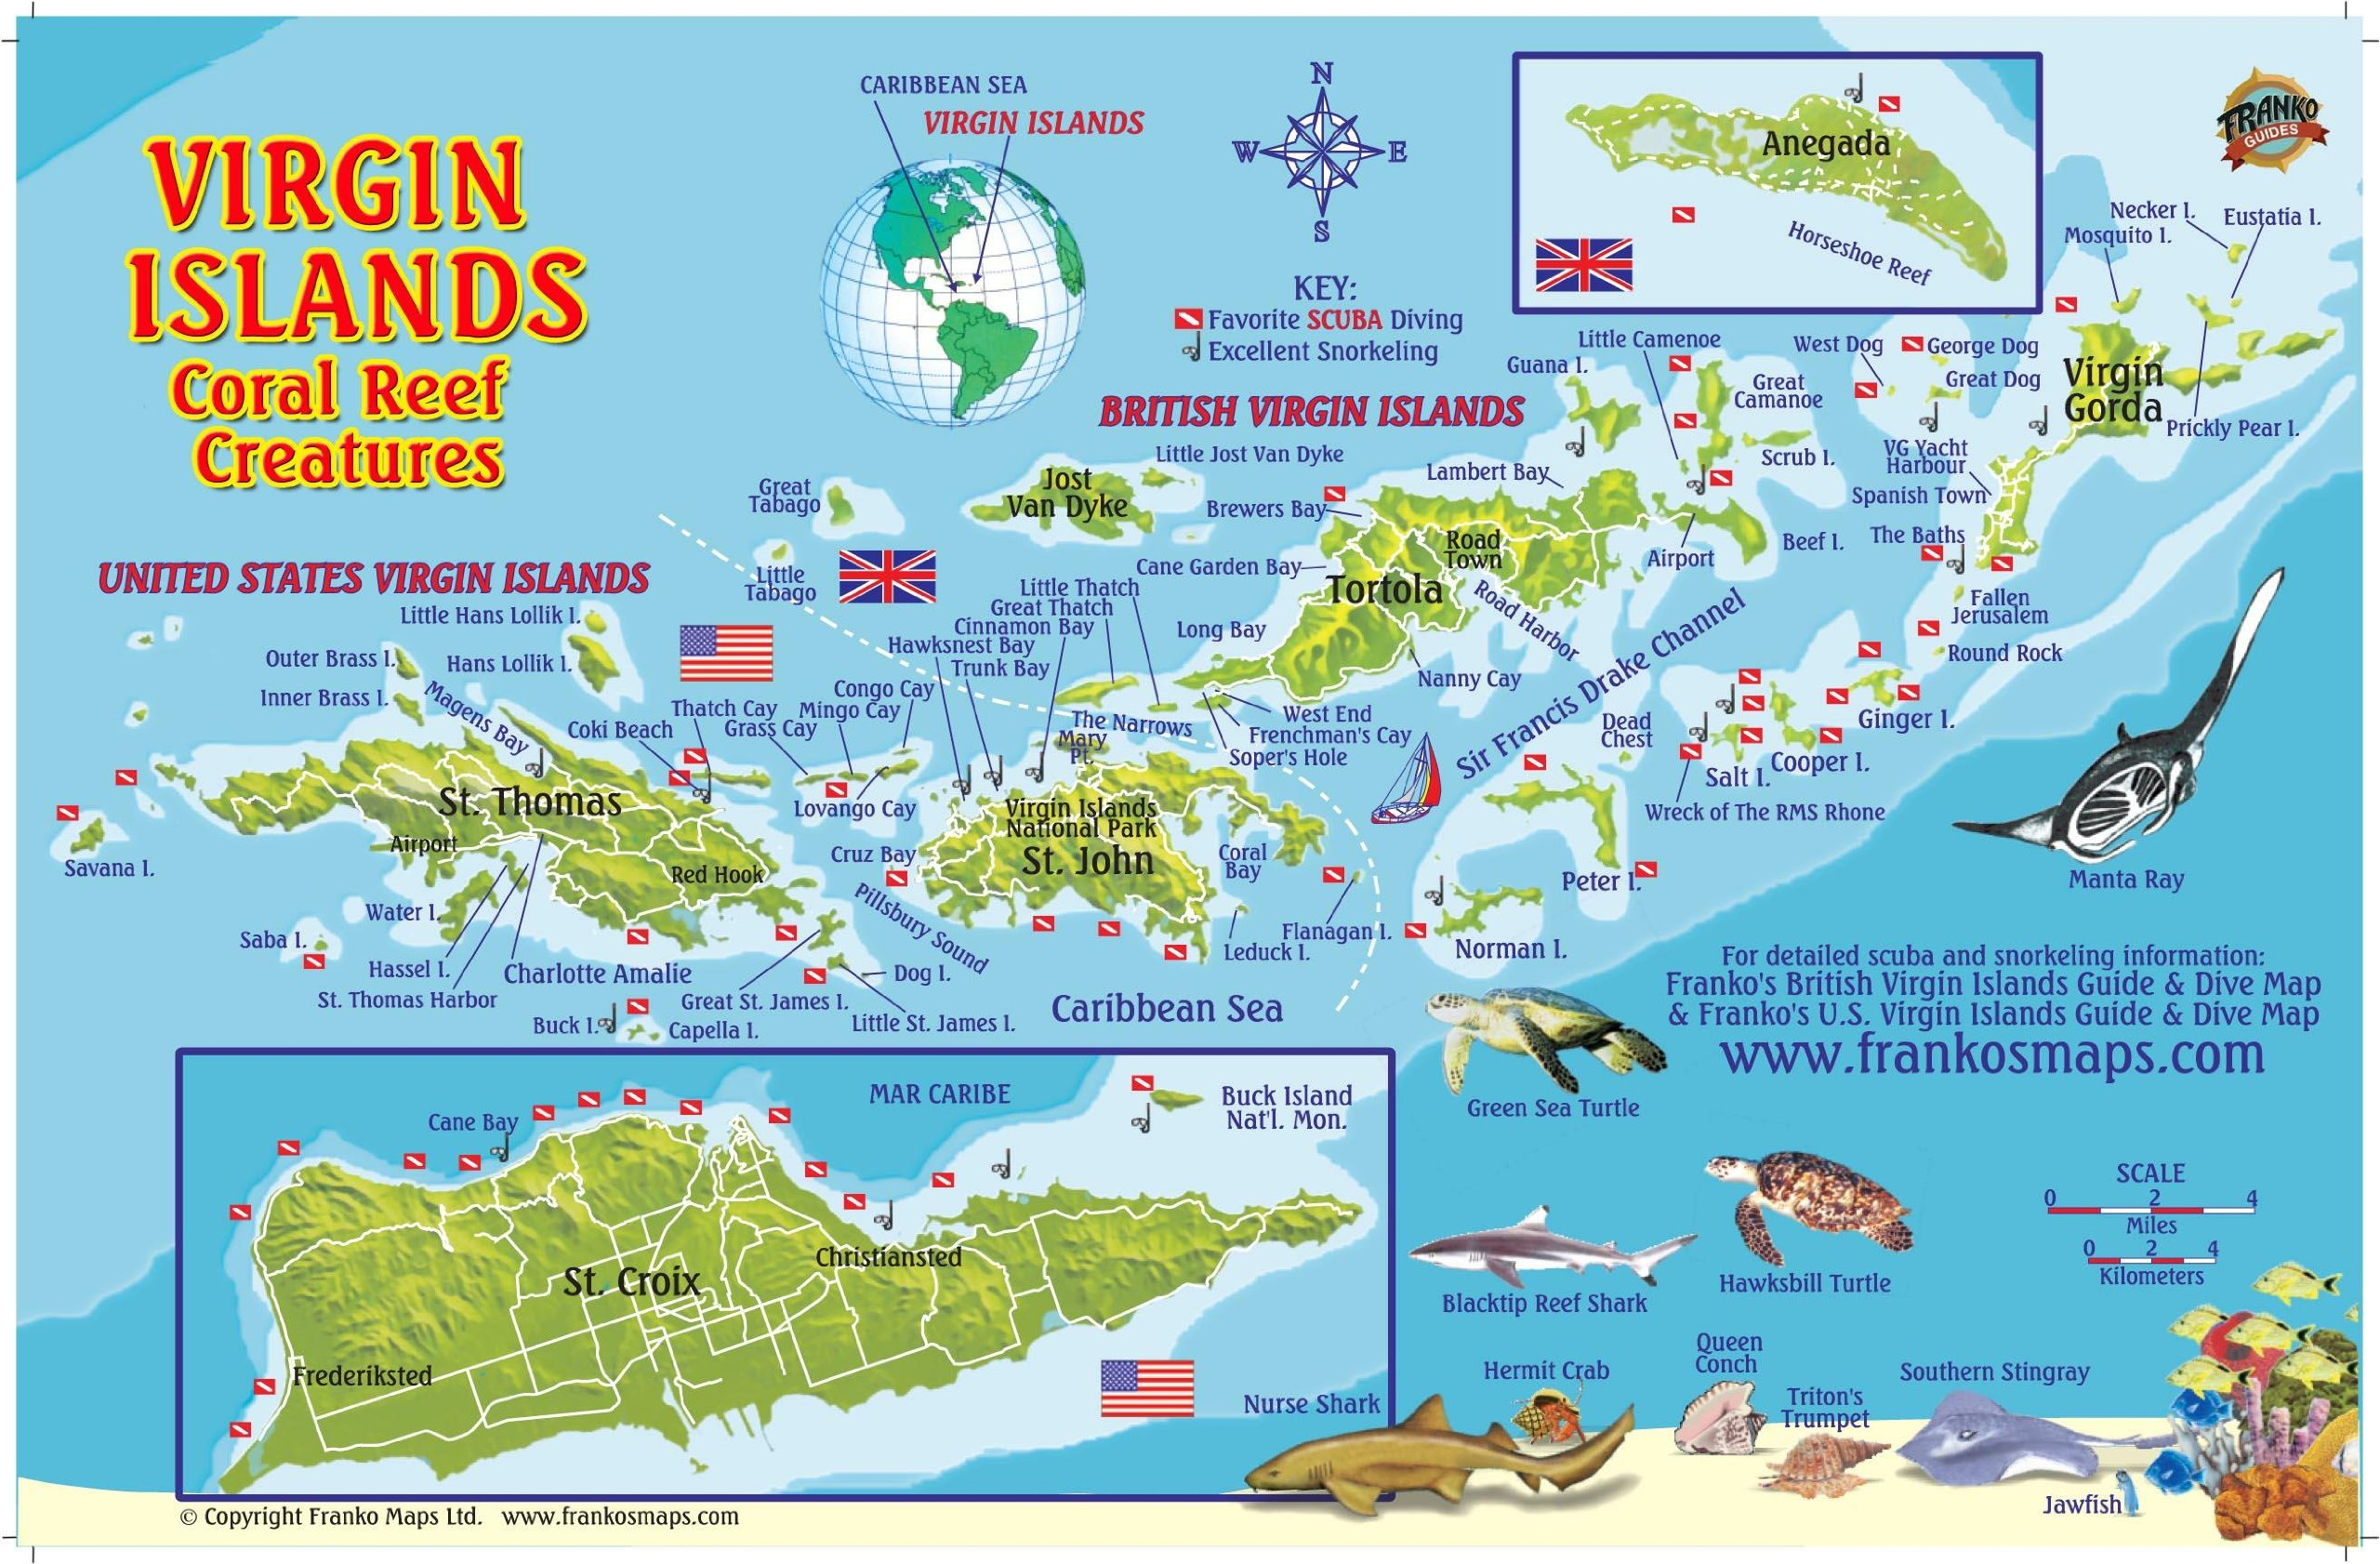 Virgin Islands Map Coral Reef Creatures Guide Franko Maps - Us and british virgin islands map